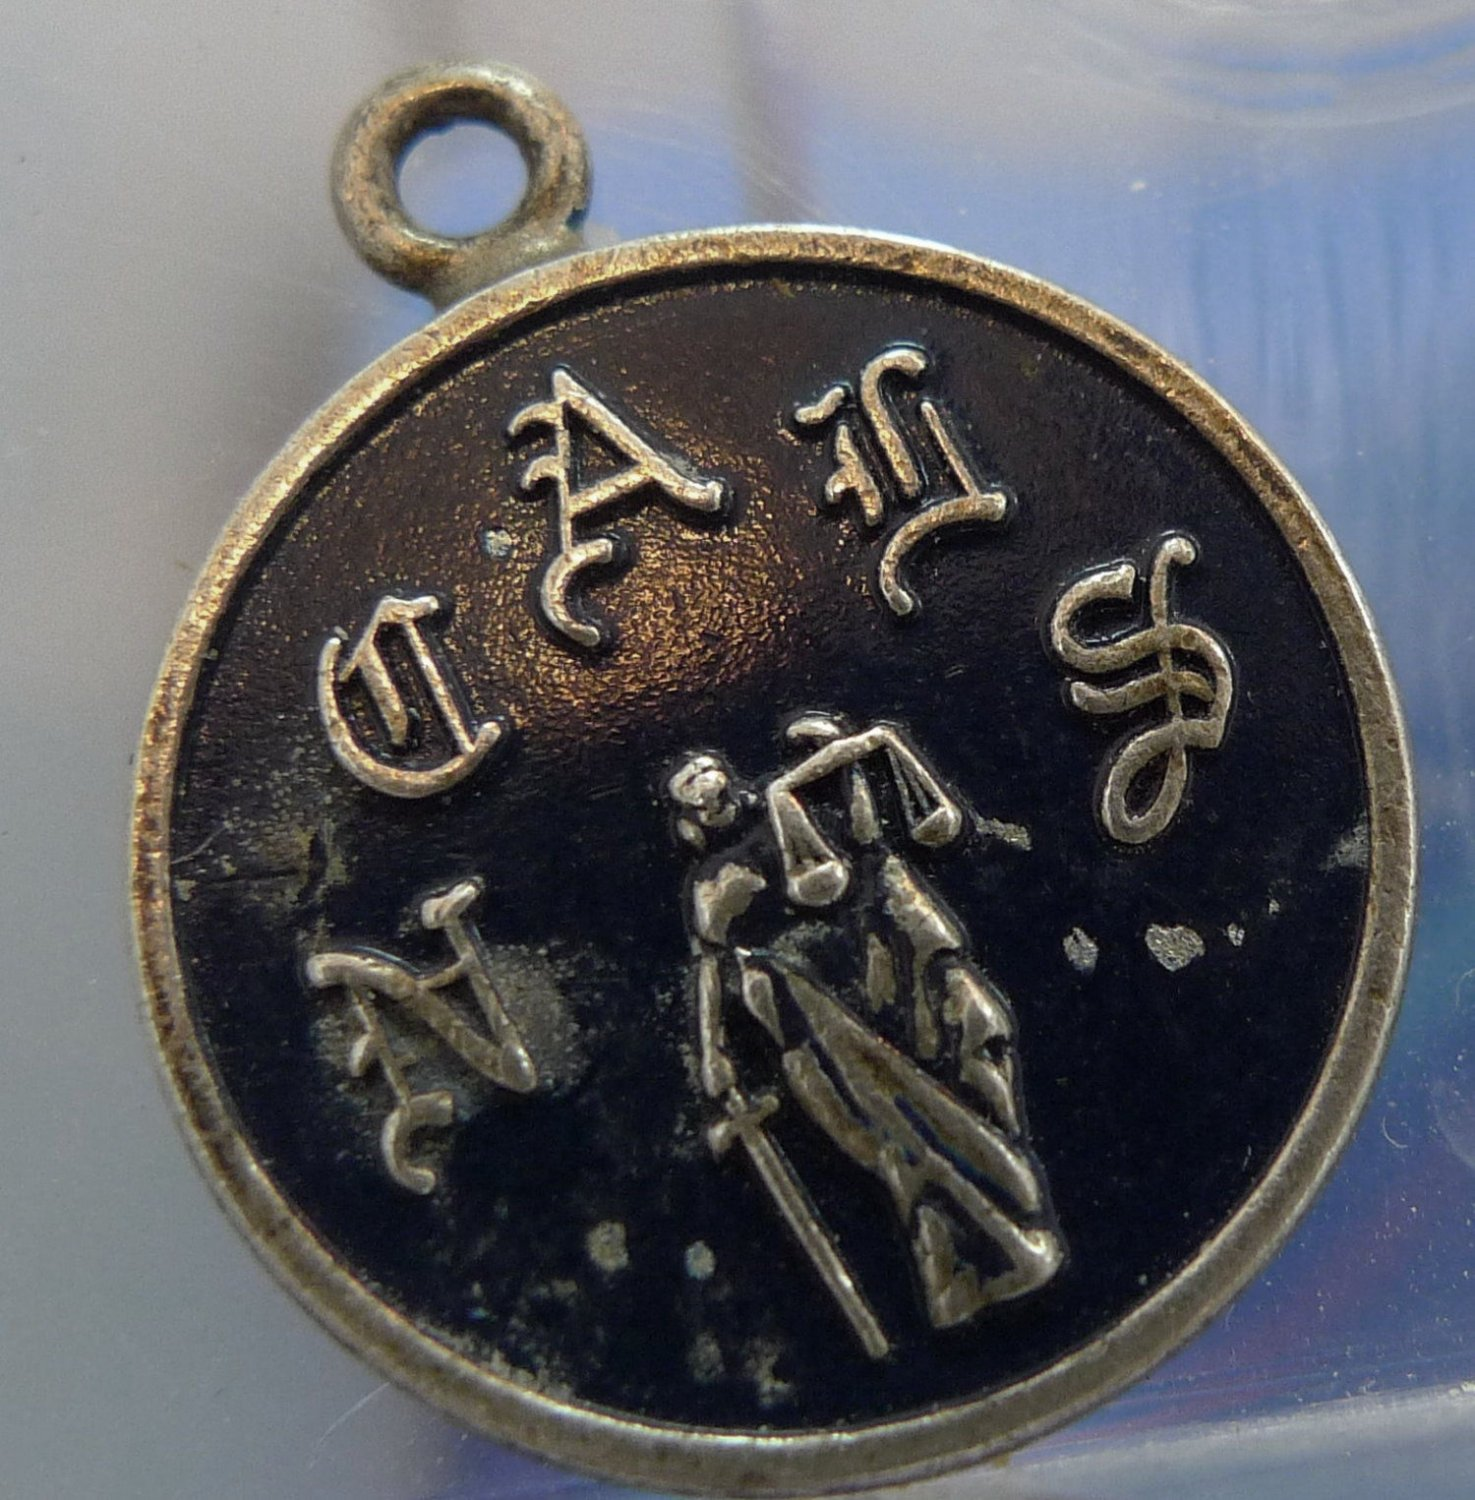 vintage CHARM : NCAIS OR NCAUS / JUSTICE / BLACK ENAMEL & STERLING signed B